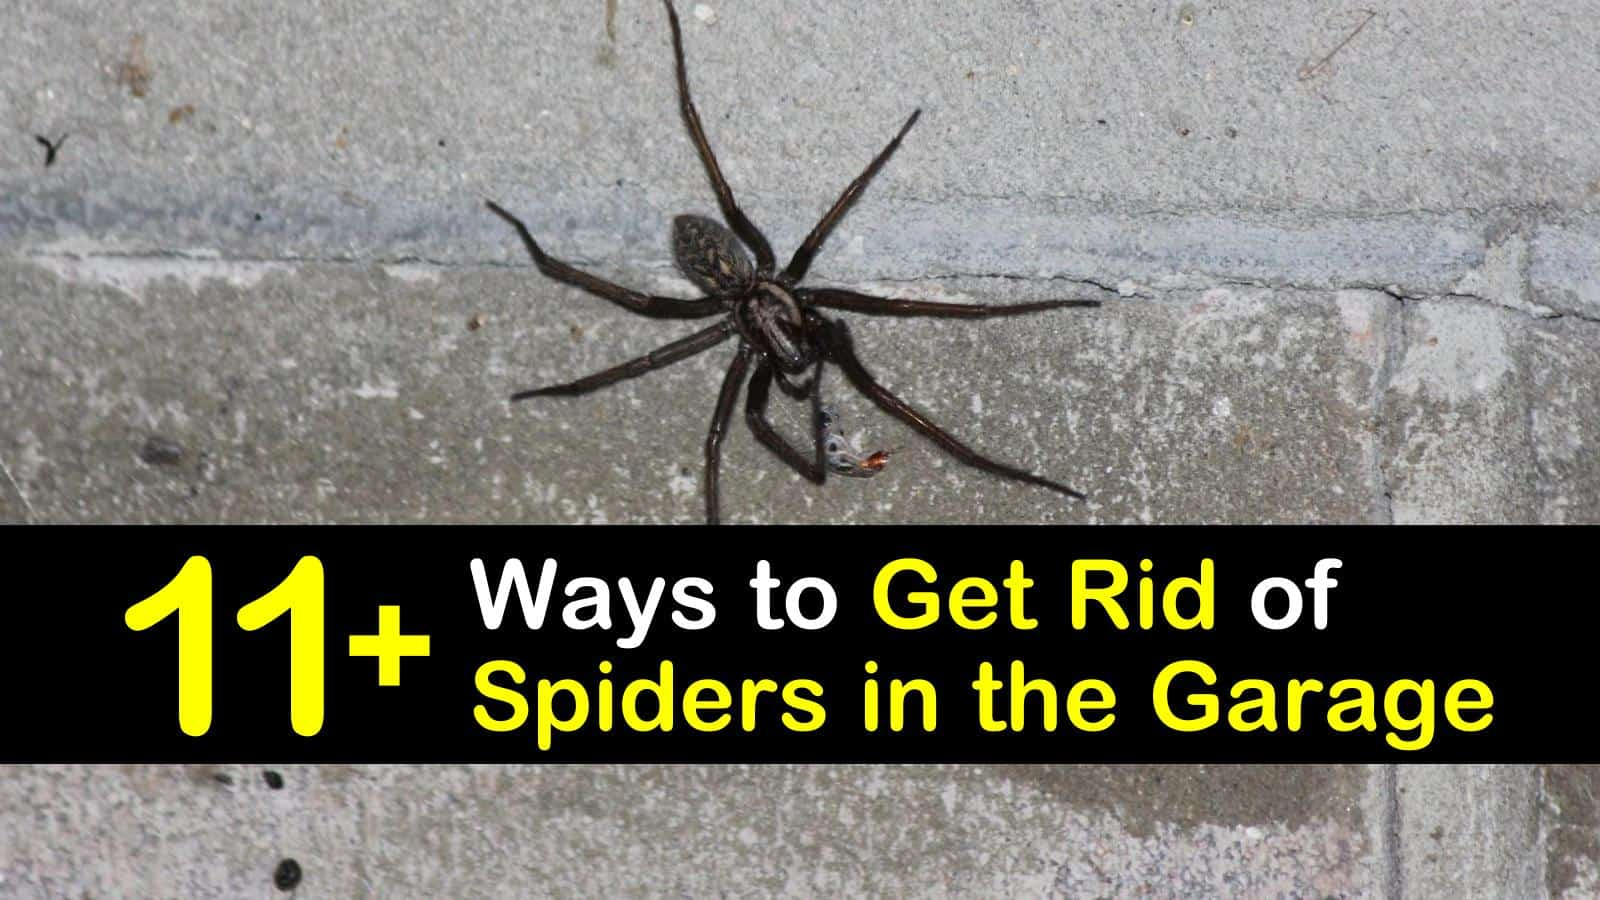 how to get rid of spiders in the garage titleimg1